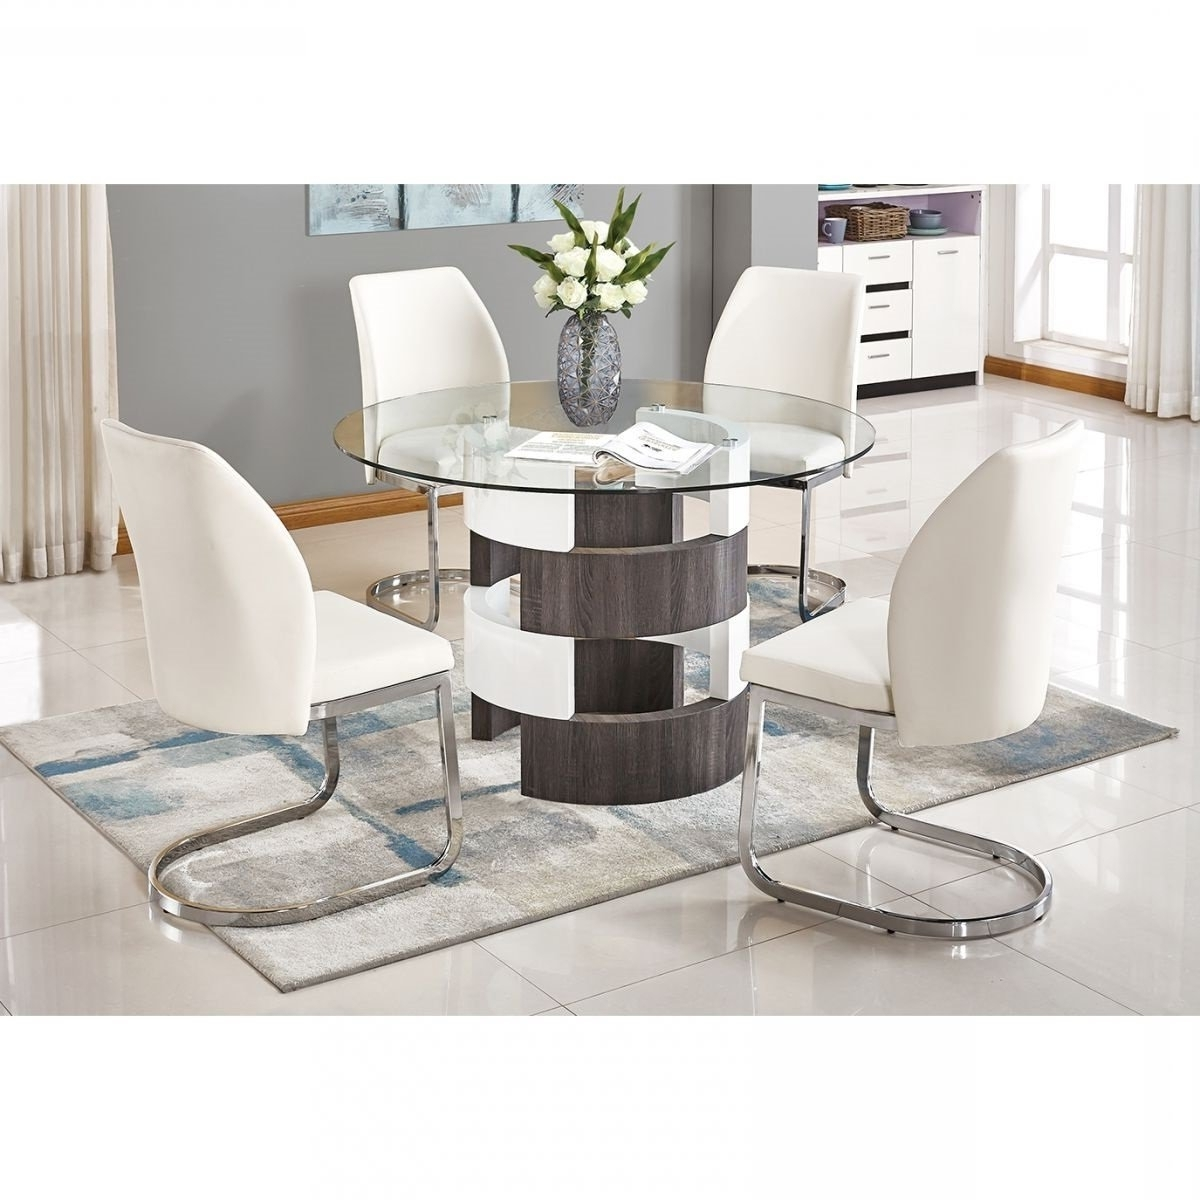 2017 Valencia 5 Piece Round Dining Sets With Uph Seat Side Chairs Regarding Argot White 5 Pc Dining Room (View 1 of 25)